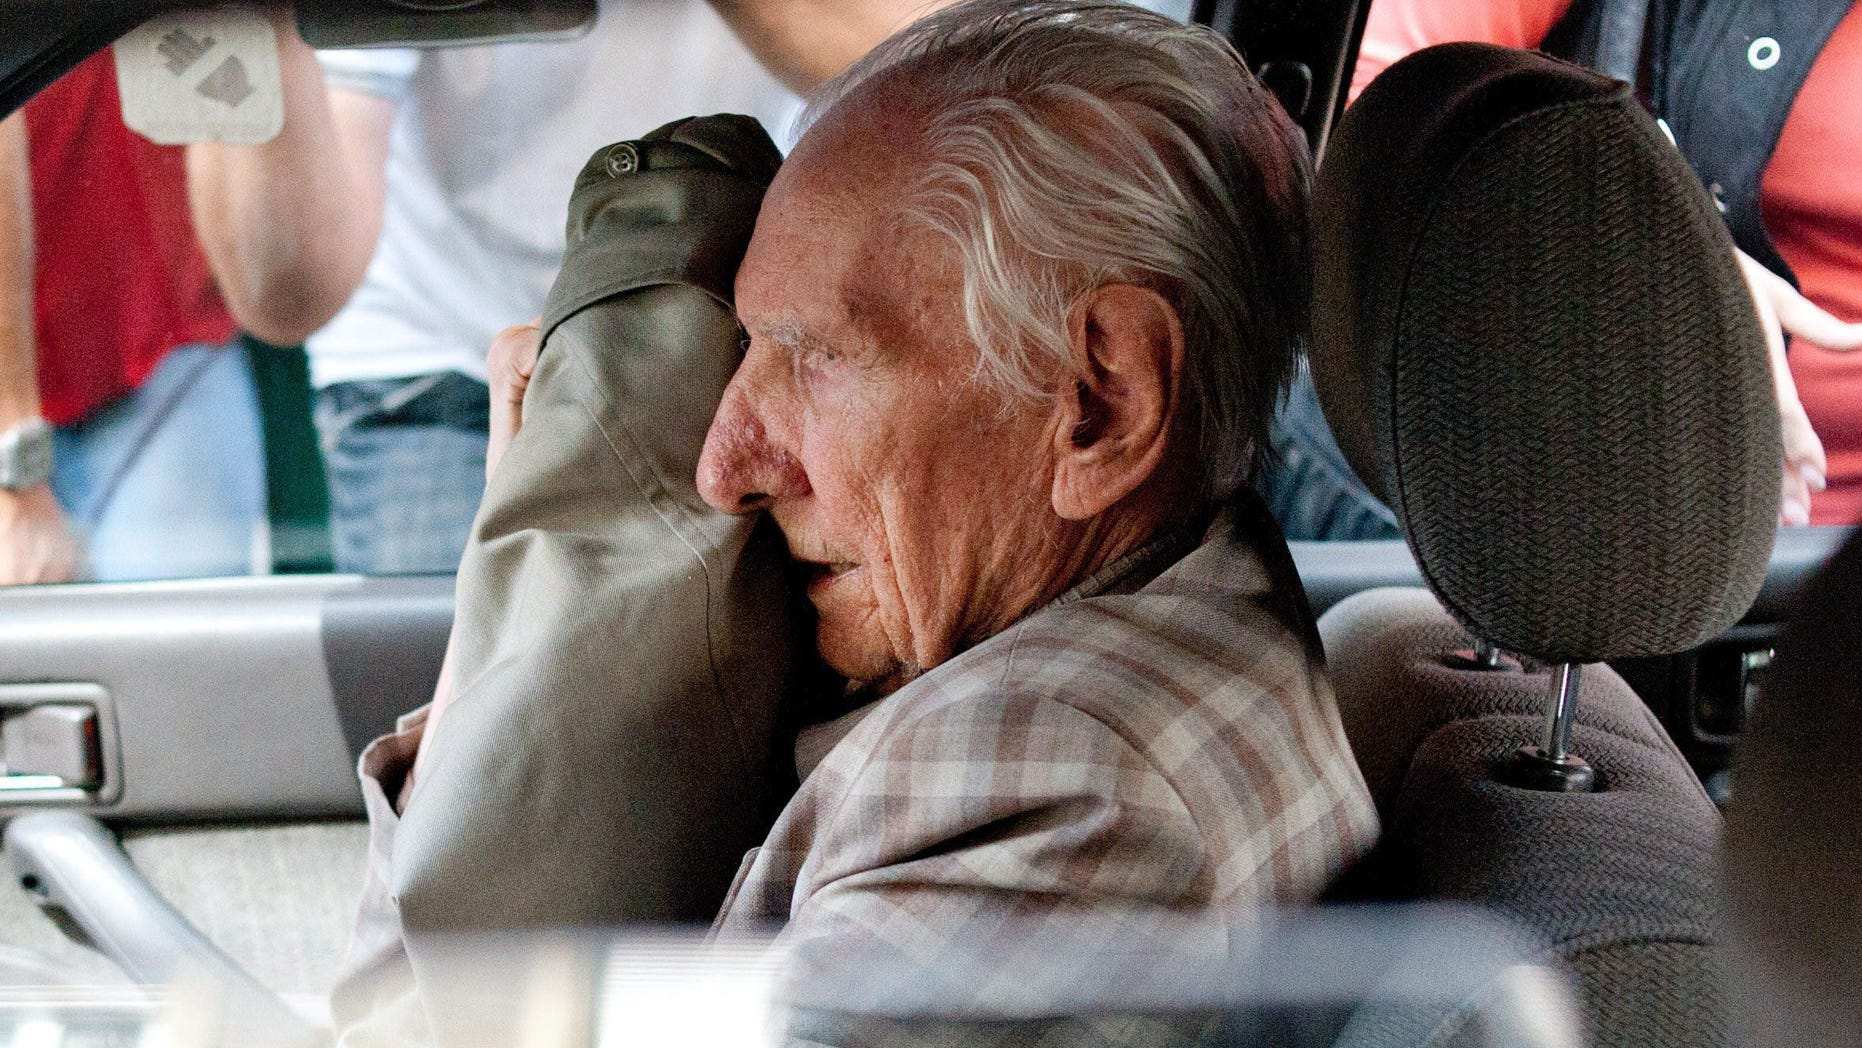 July 18, 2012 - FILE photo shows alleged Hungarian war criminal Laszlo Csatary covering his face in a car as he leaves the Budapest Prosecutor's Office after he was questioned by detectives on charges of war crimes during WWII and prosecutors ordered his house arrest in Budapest, Hungary. Csatary, a former police officer indicted in June 2013 by Hungarian authorities for abusing Jews and contributing to their deportation to Nazi death camps during World War II, has died.